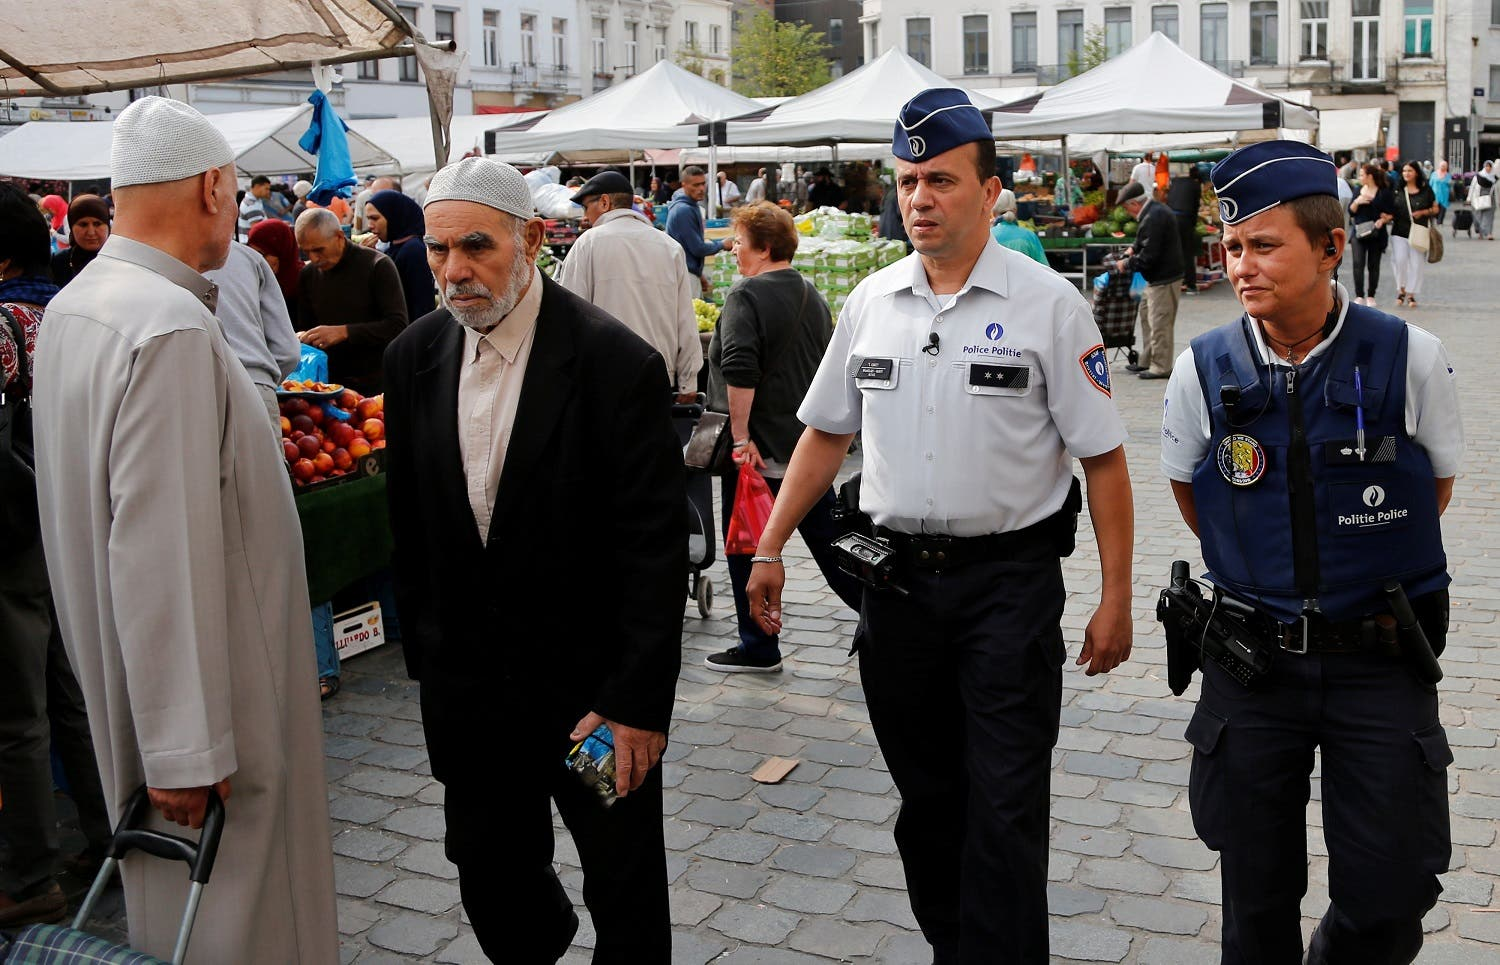 Despite the pride that Chatt says the Molenbeek community feels towards him, there is still stigma attached to working for the police. Officers Ann Vercammen (R) and Tarek Chatt patrol at a market in Belgium. (File Photo: Reuters)